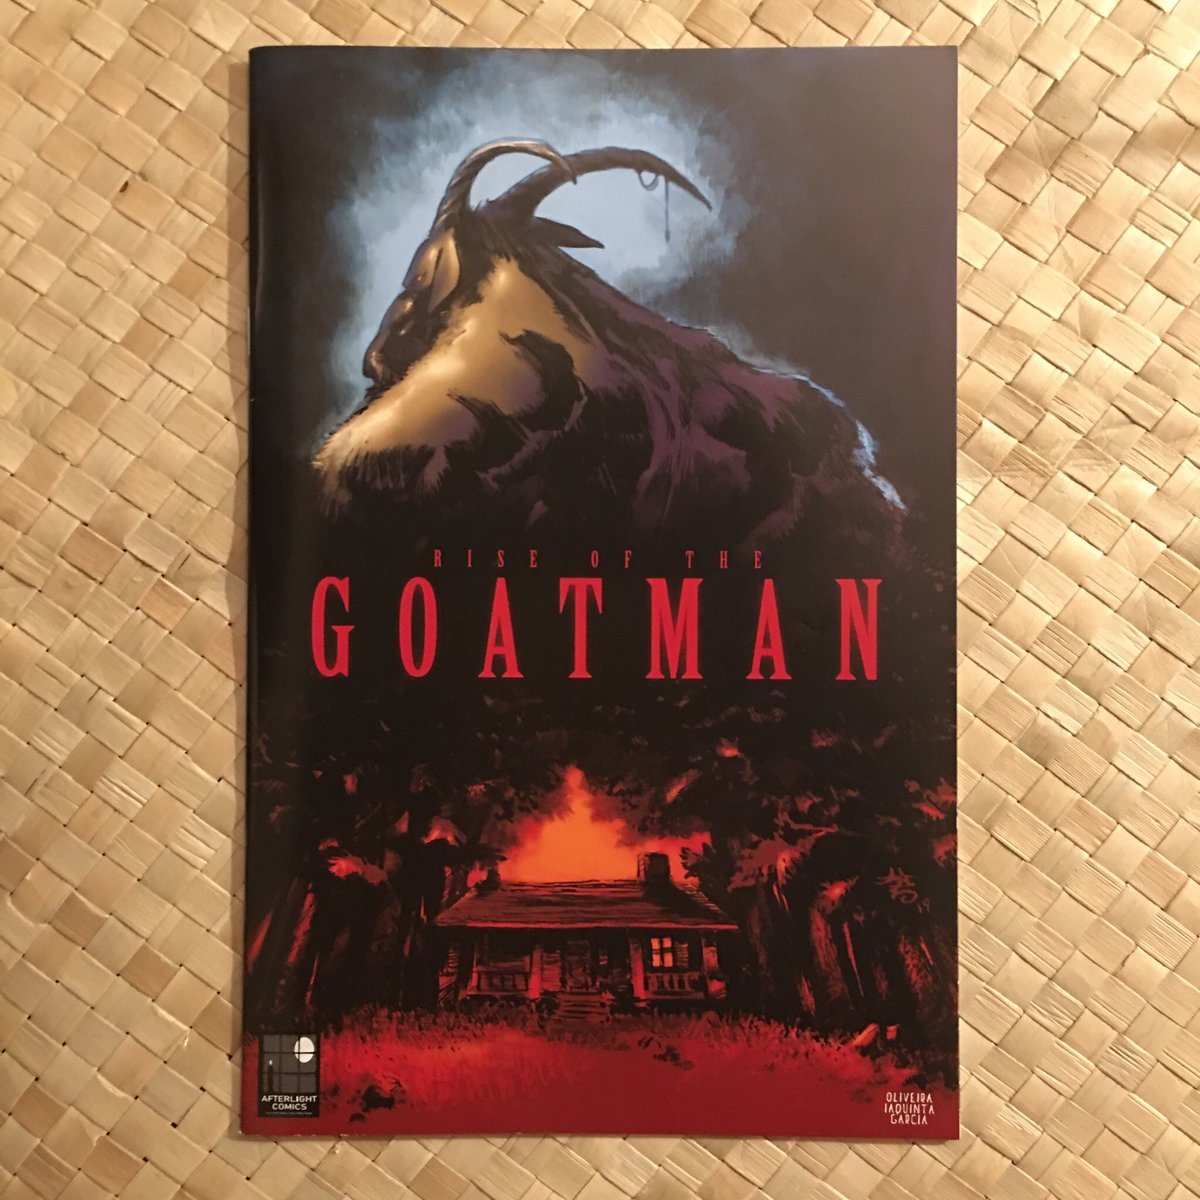 the-rise-of-the-goatman